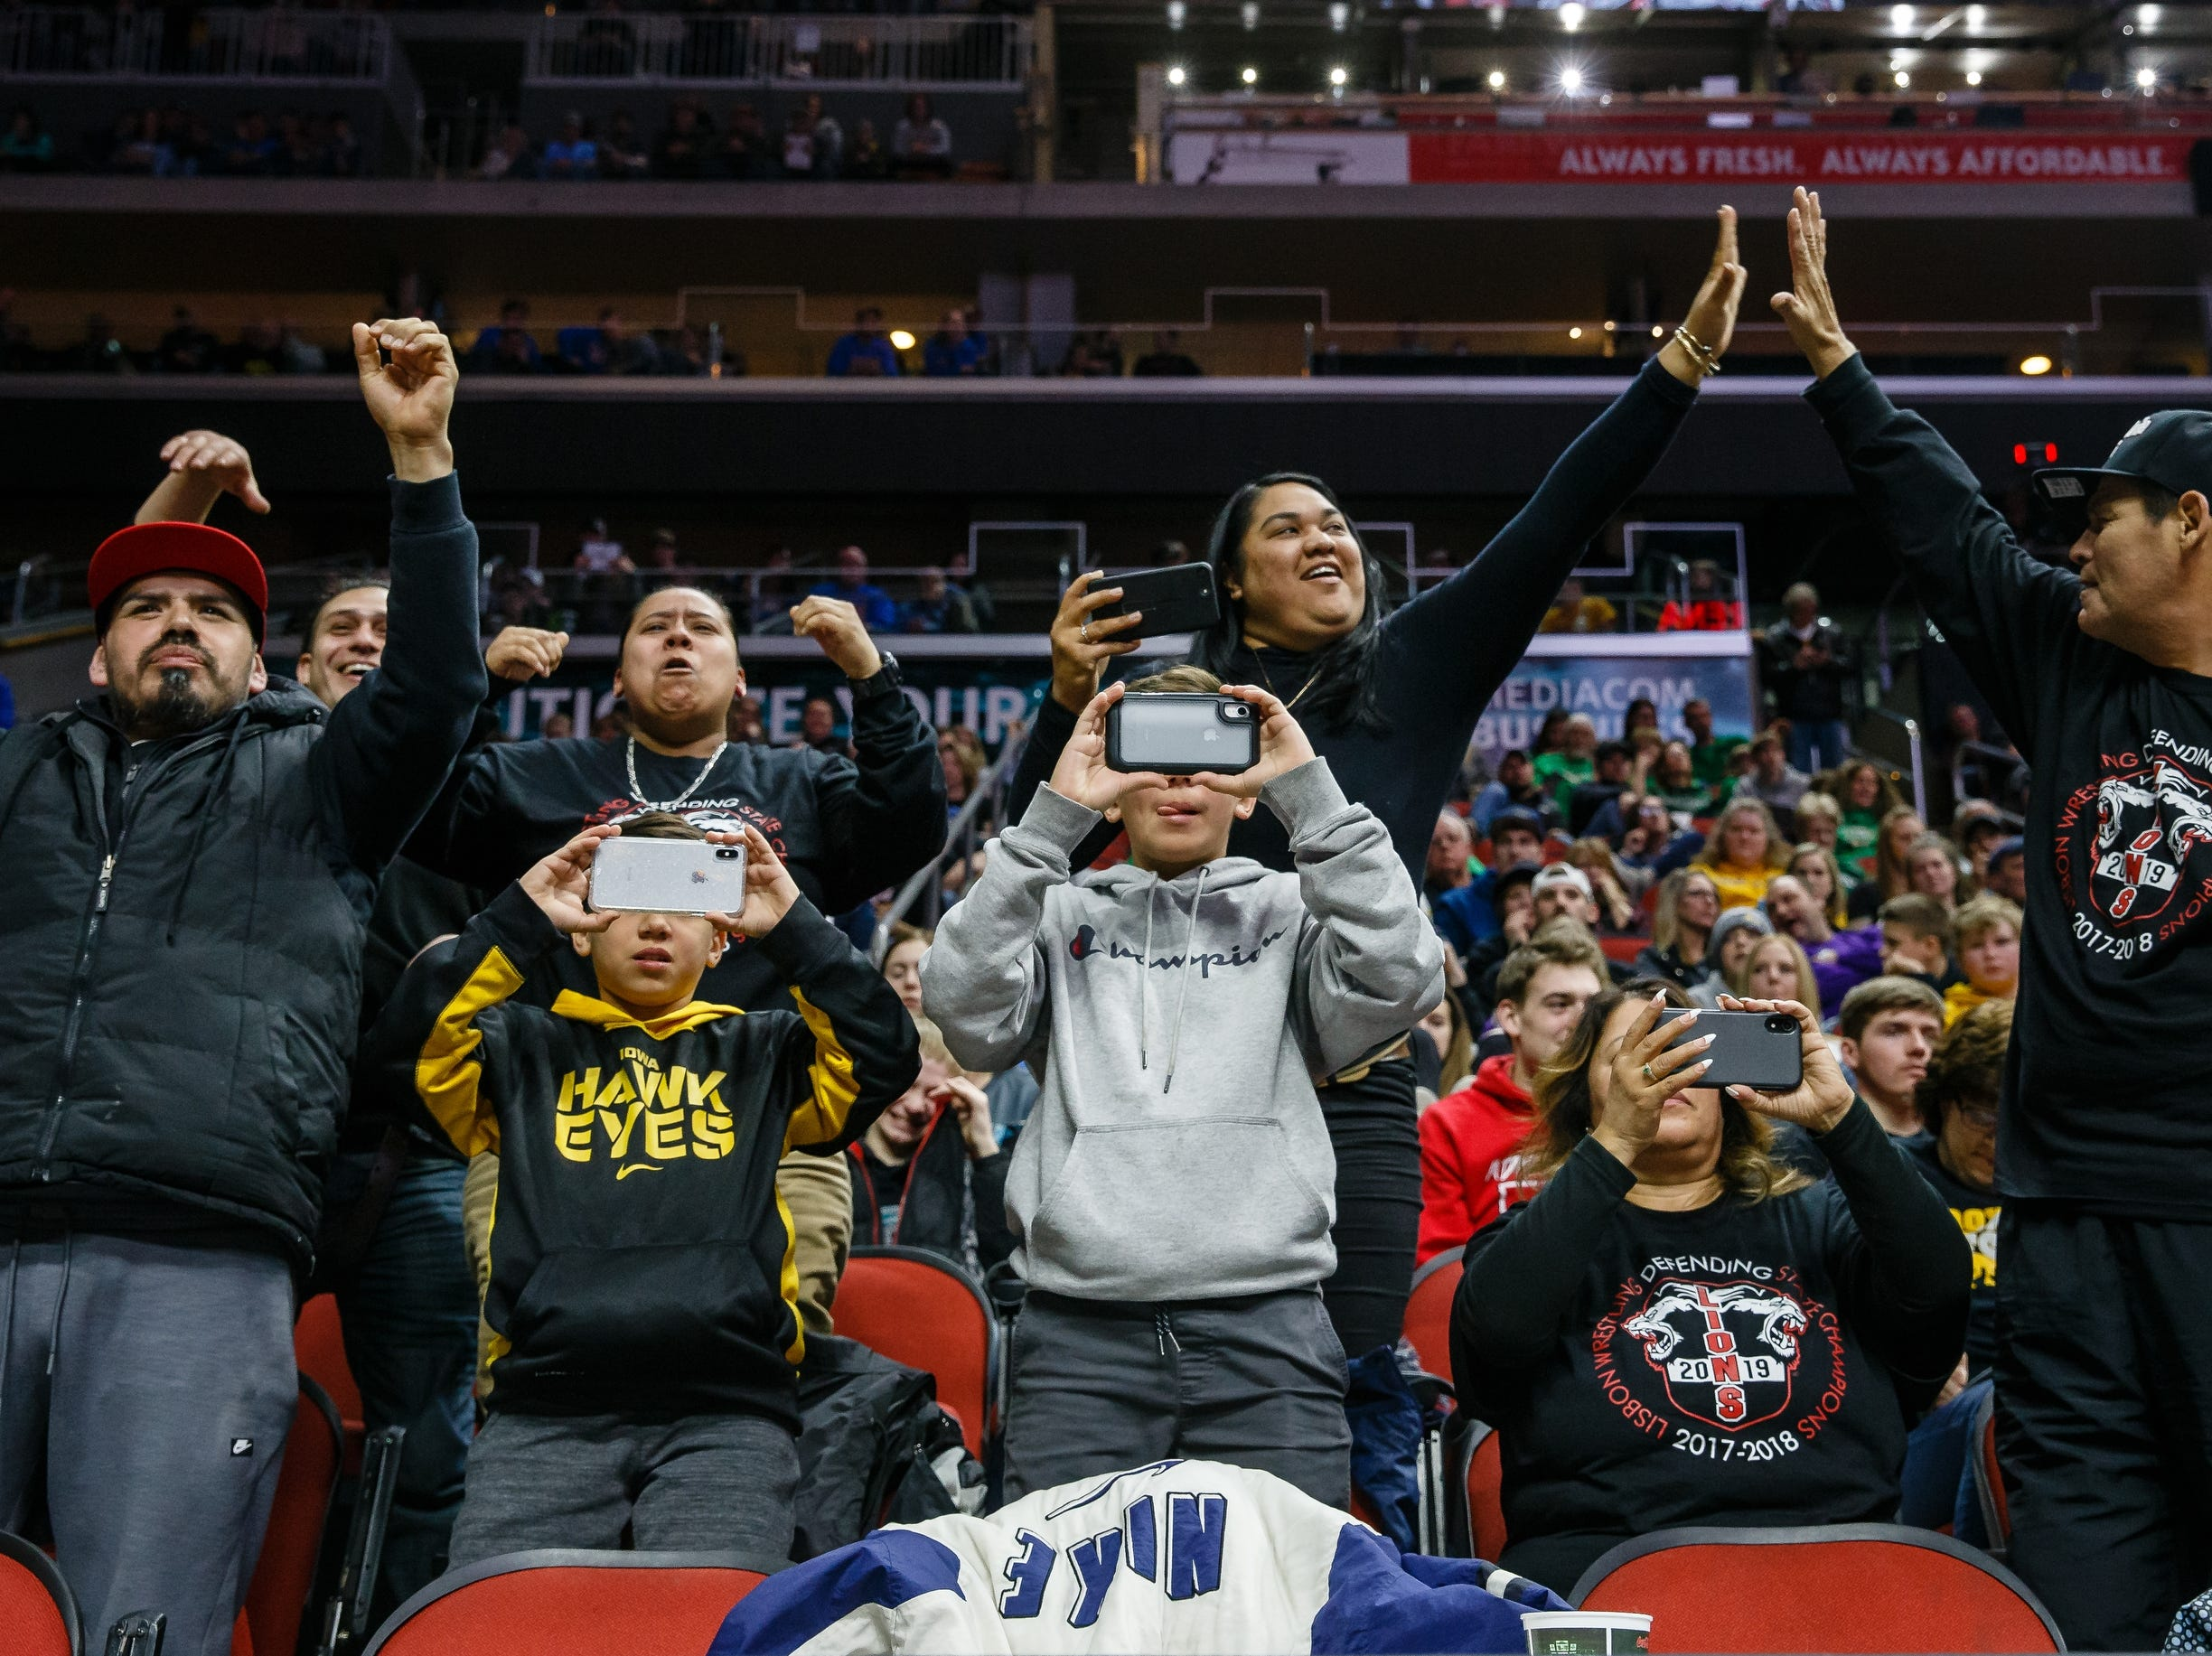 Fans cheer on their wrestlers during the class 1A 132 pound state championship semi-final match on Friday, Feb. 15, 2019 in Des Moines.